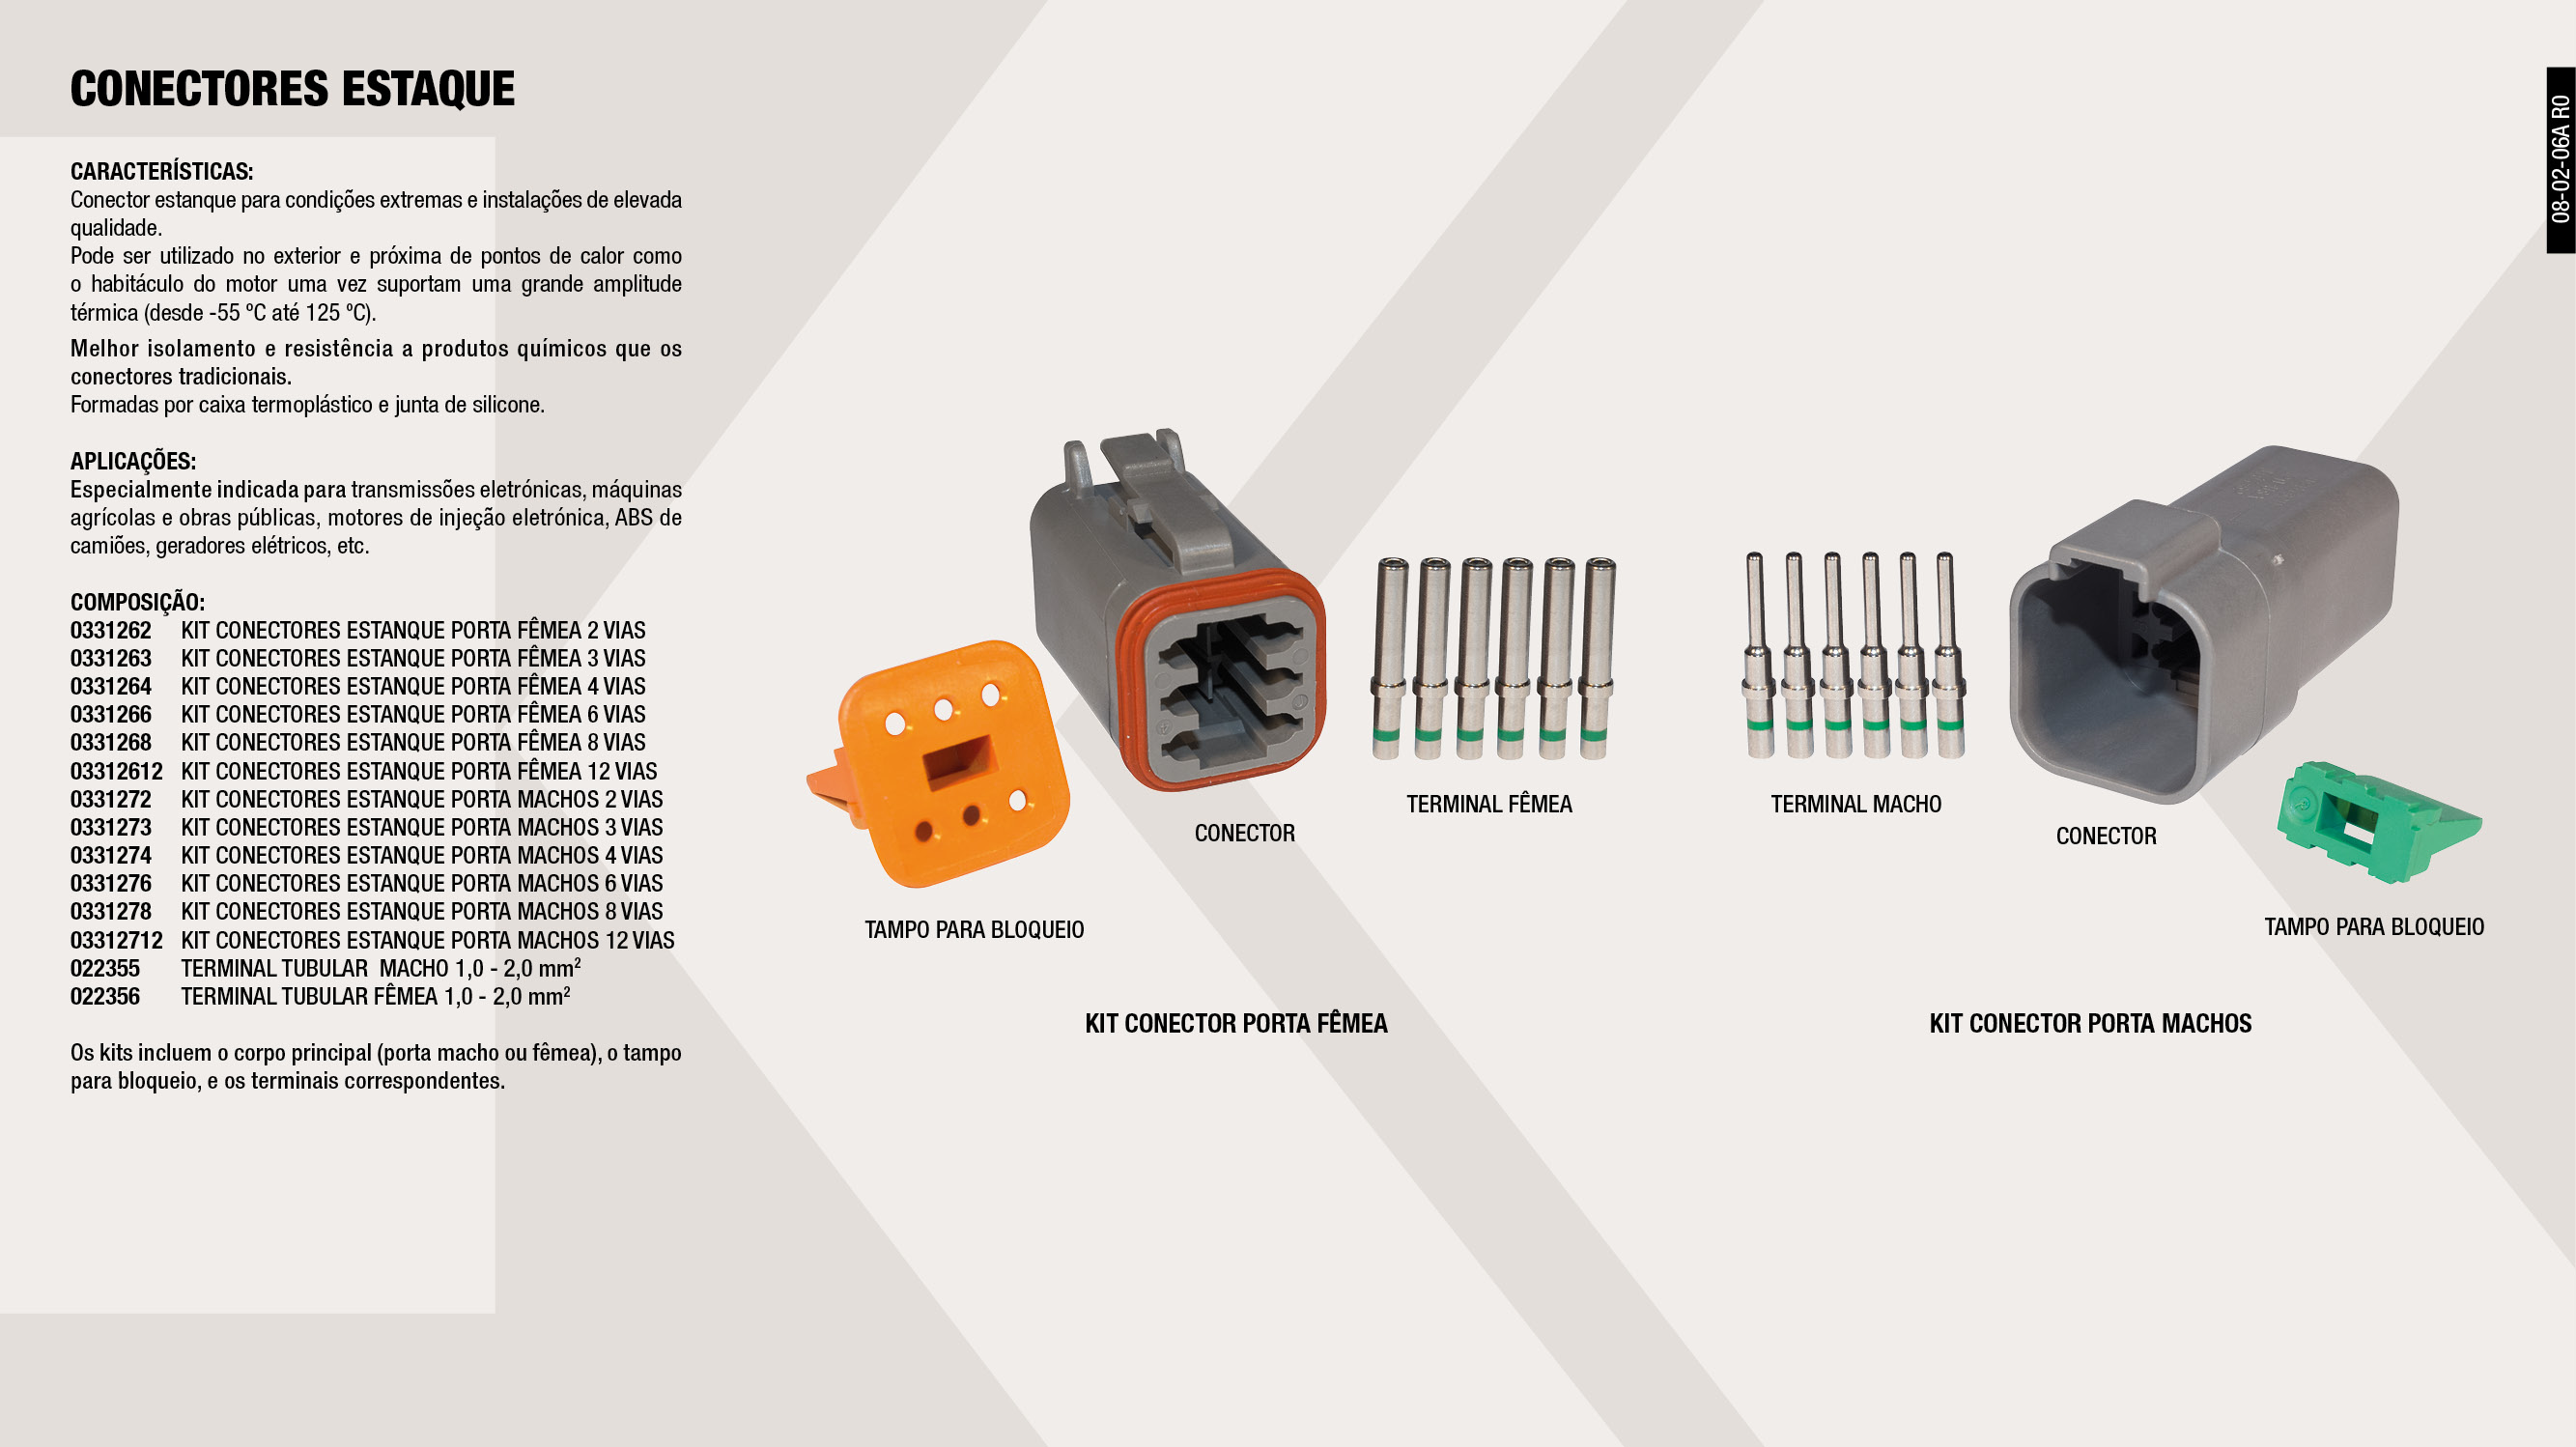 KIT CONECTOR ESTANCO PORTA MACHOS 6 VIAS                    ,  									KIT CONECTOR ESTANCO PORTA FEMEAS 4 VIAS                    ,  									TERMINAL TUBULAR  MACHO 1,0-2,0 MM2                         ,  									TERMINAL TUBULAR FEMEA 1,0-2,0 MM2                          ,  									KIT CONECTOR ESTANCO PORTA MACHOS 12 VIAS                   ,  									KIT CONECTOR ESTANCO PORTA FEMEAS 6 VIAS                    ,  									KITCONECTOR ESTANCO PORTA MACHOS 3 VIAS                     ,  									KIT CONECTOR ESTANCO PORTA FEMEAS 2 VIAS                    ,  									KIT CONECTOR ESTANCO PORTA FEMEAS 8 VIAS                    ,  									KIT CONECTOR ESTANCO PORTA MACHOS 8 VIAS                    ,  									KIT CONECTOR ESTANCO PORTA MACHOS 4 VIAS                    ,  									KIT CONECTOR ESTANCO PORTA FEMEAS 3 VIAS                    ,  									KIT CONECTOR ESTANCO PORTA MACHOS 2 VIAS                    ,  									KIT CONECTOR ESTANCO PORTA FEMEAS 12 VIAS                   ,